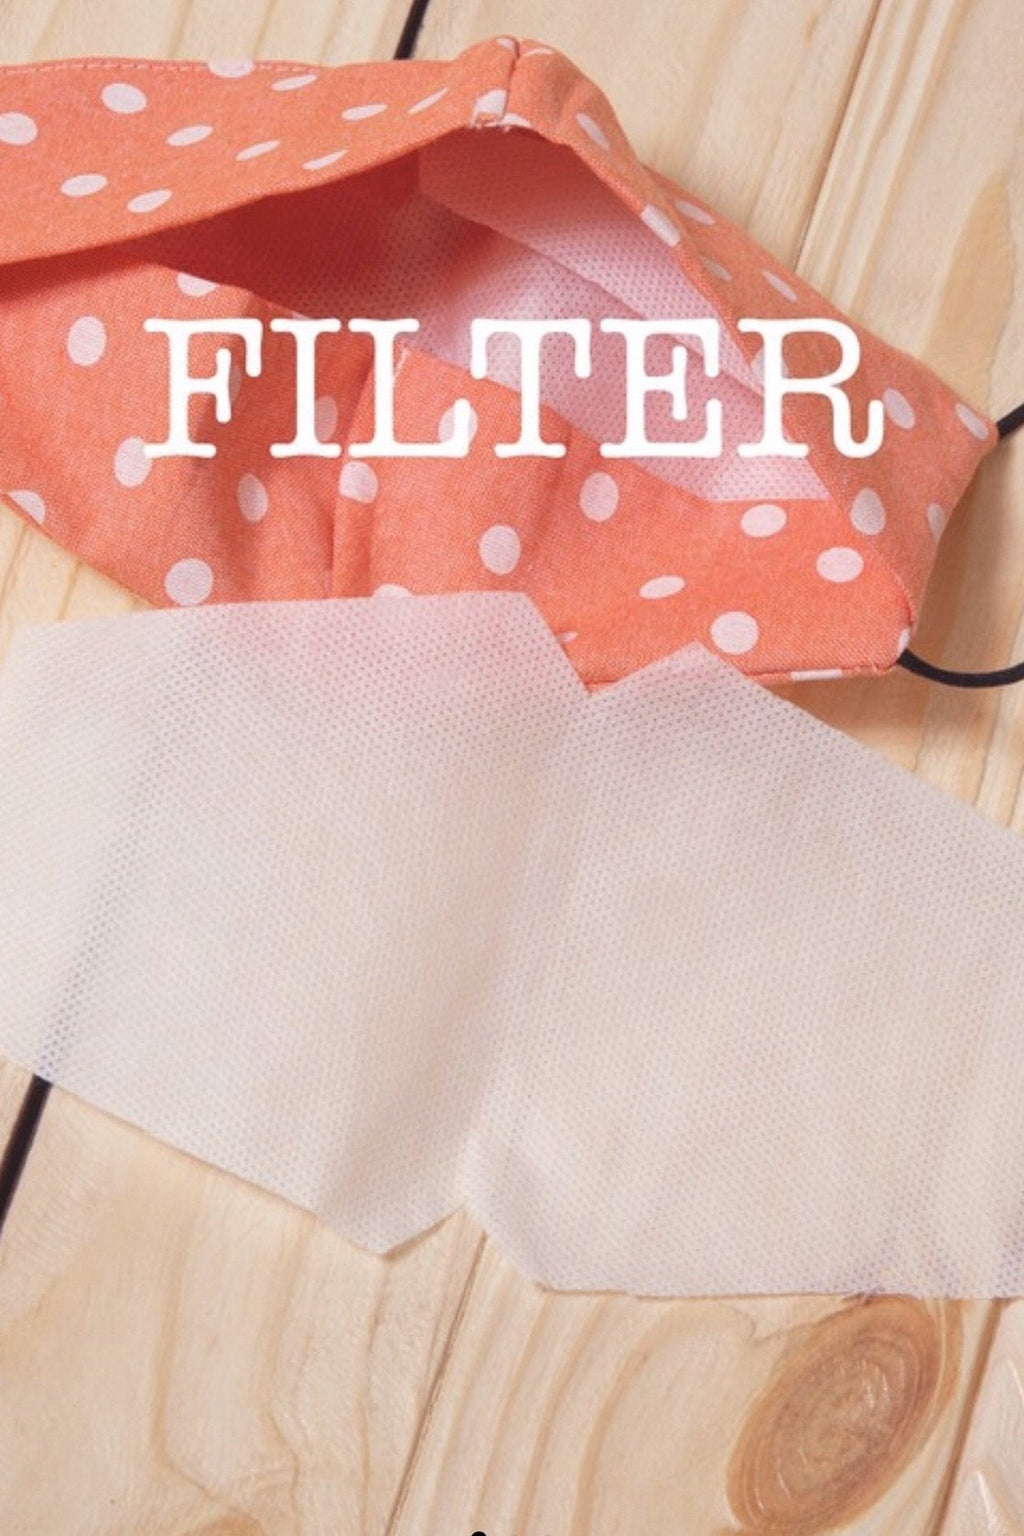 Face Mask Filter Only (Must buy Mask or another item to Purchase)